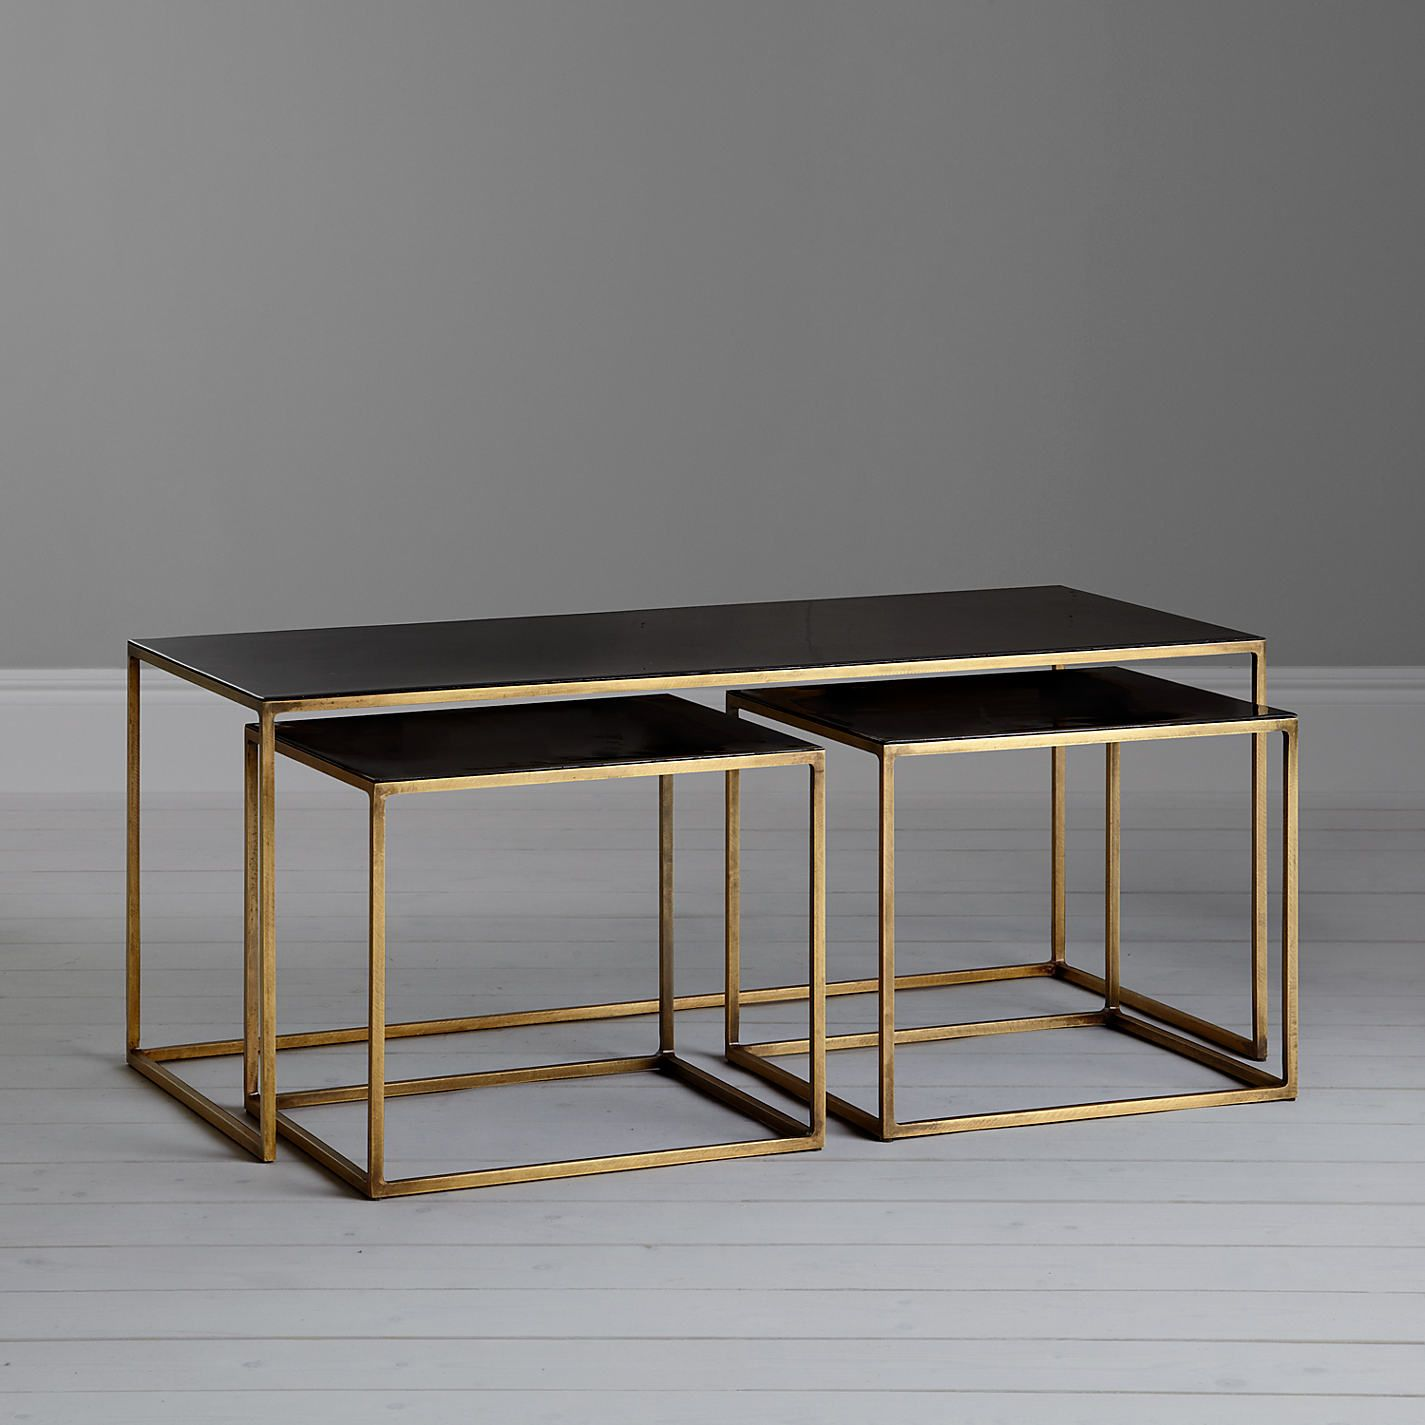 Image Result For Terence Conran Tables Brass Coffee Table Table